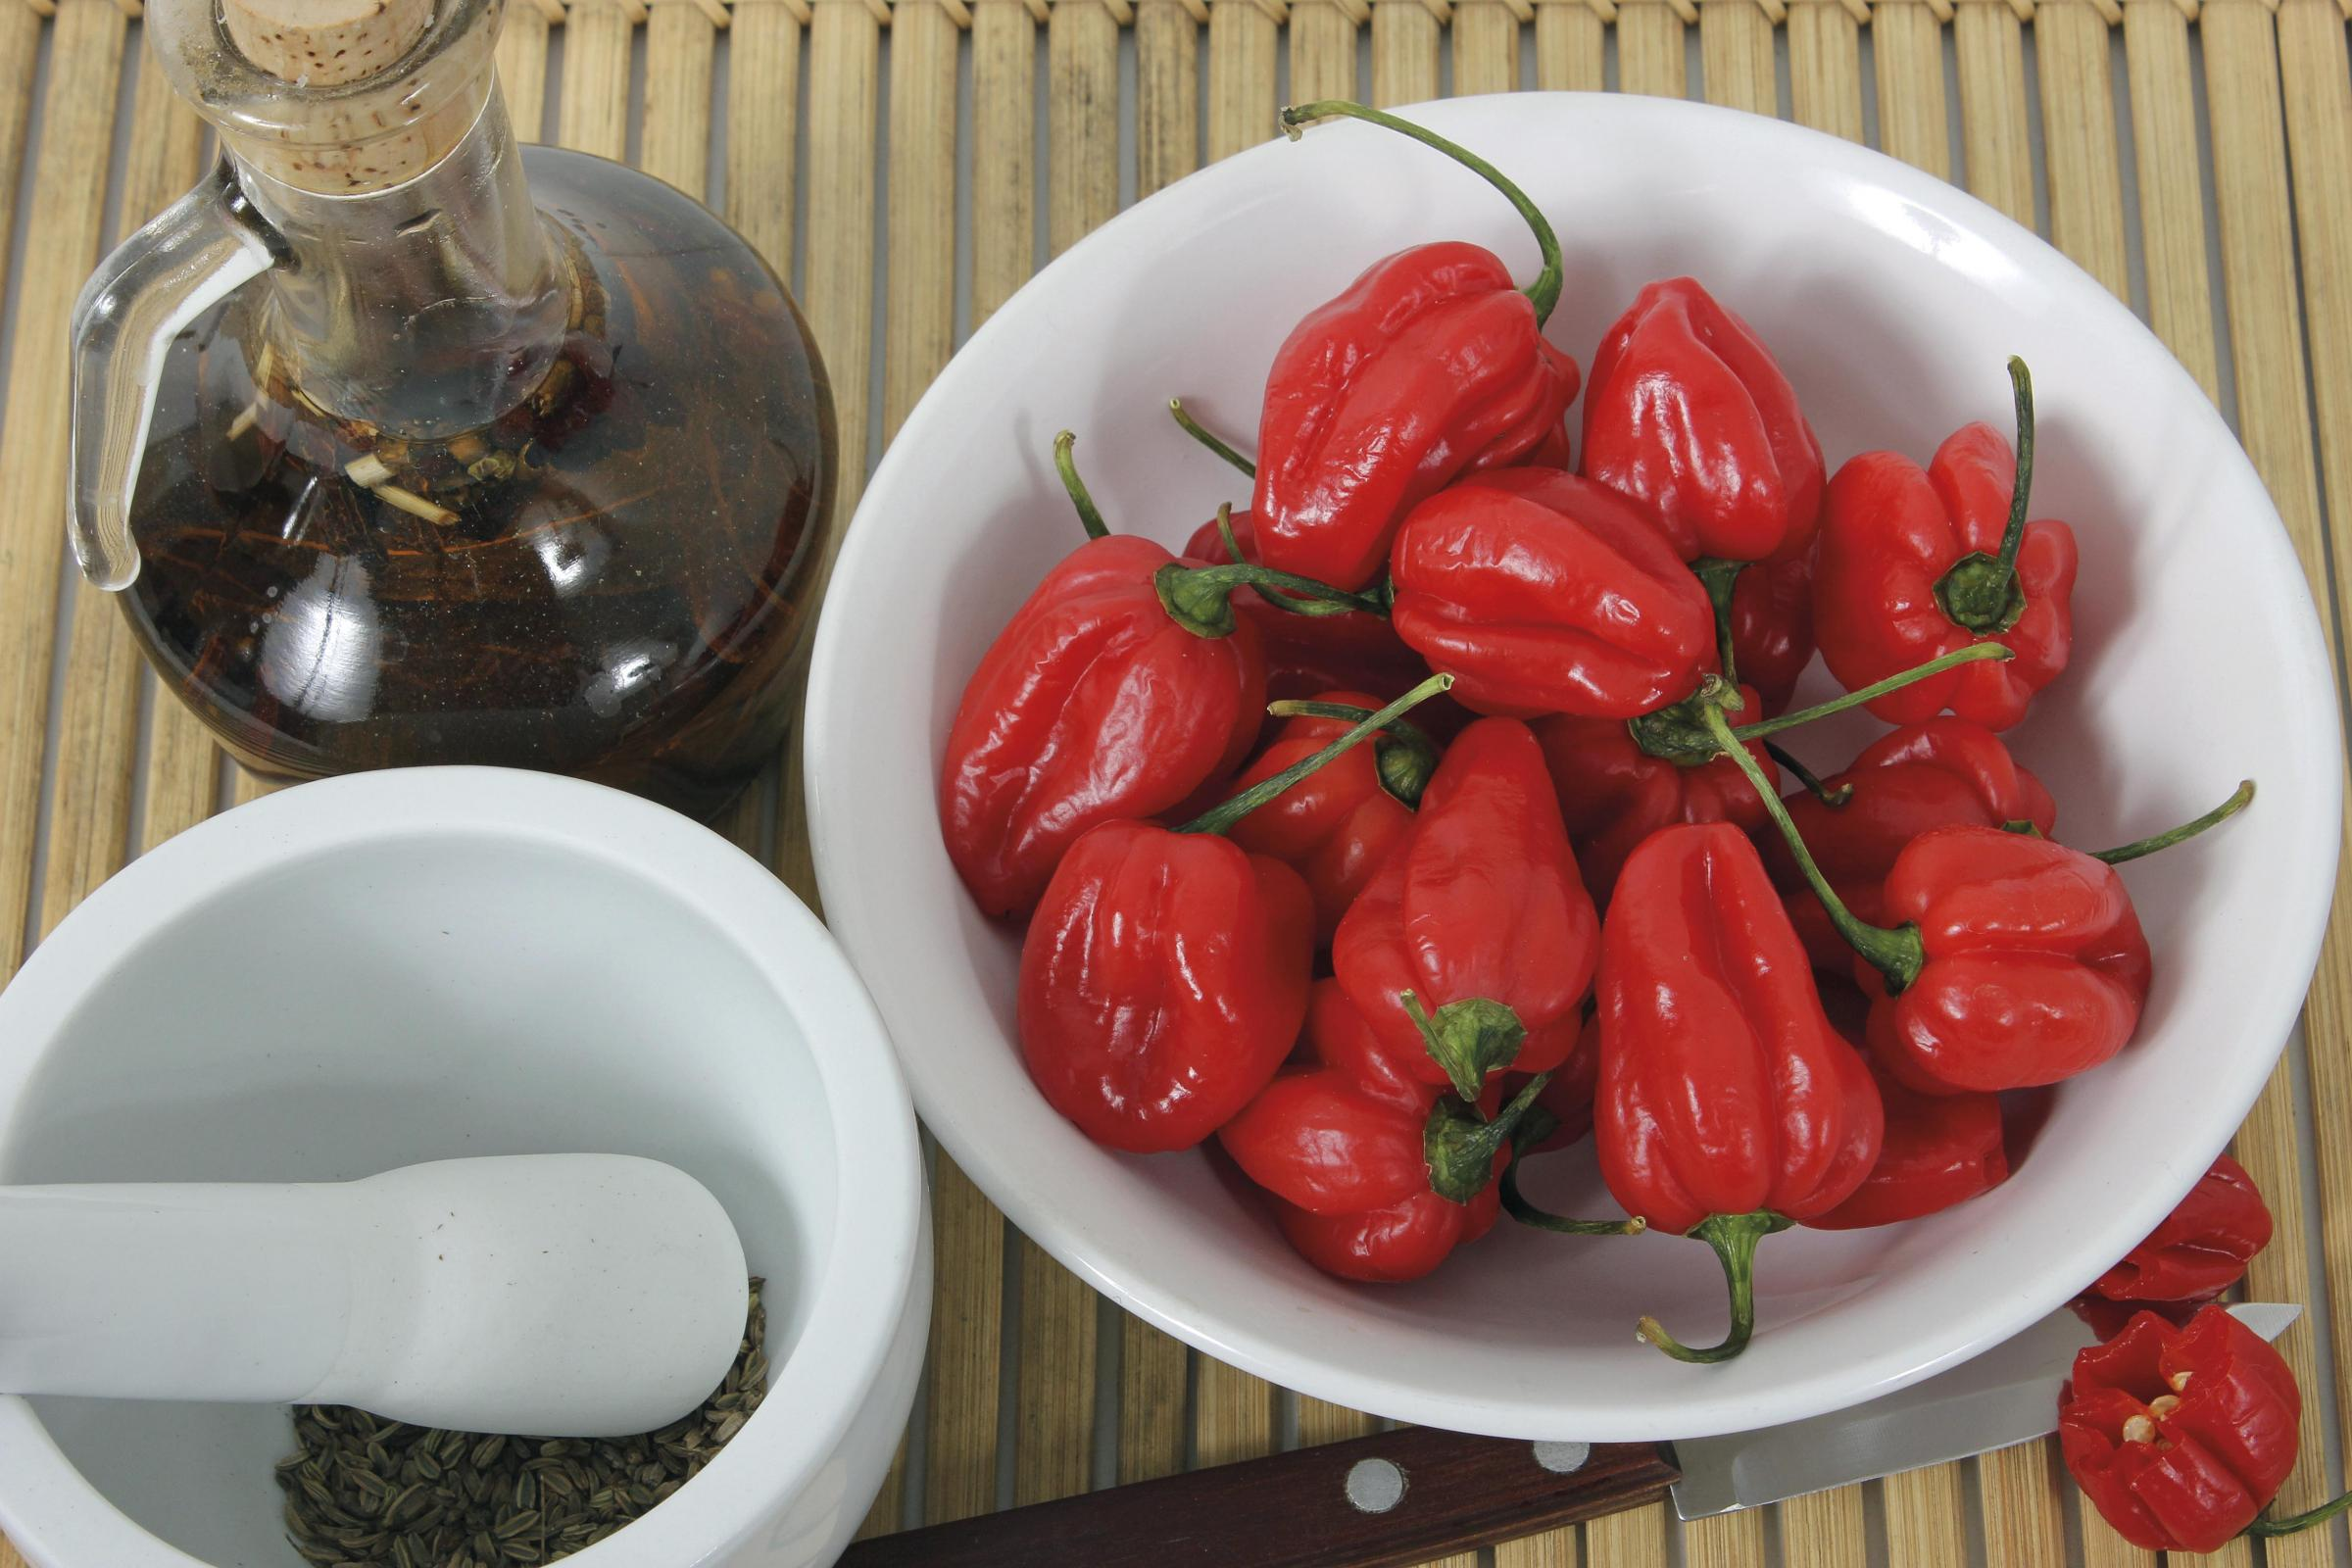 Chilli peppers can vary dramatically in heat, colour, shape and taste